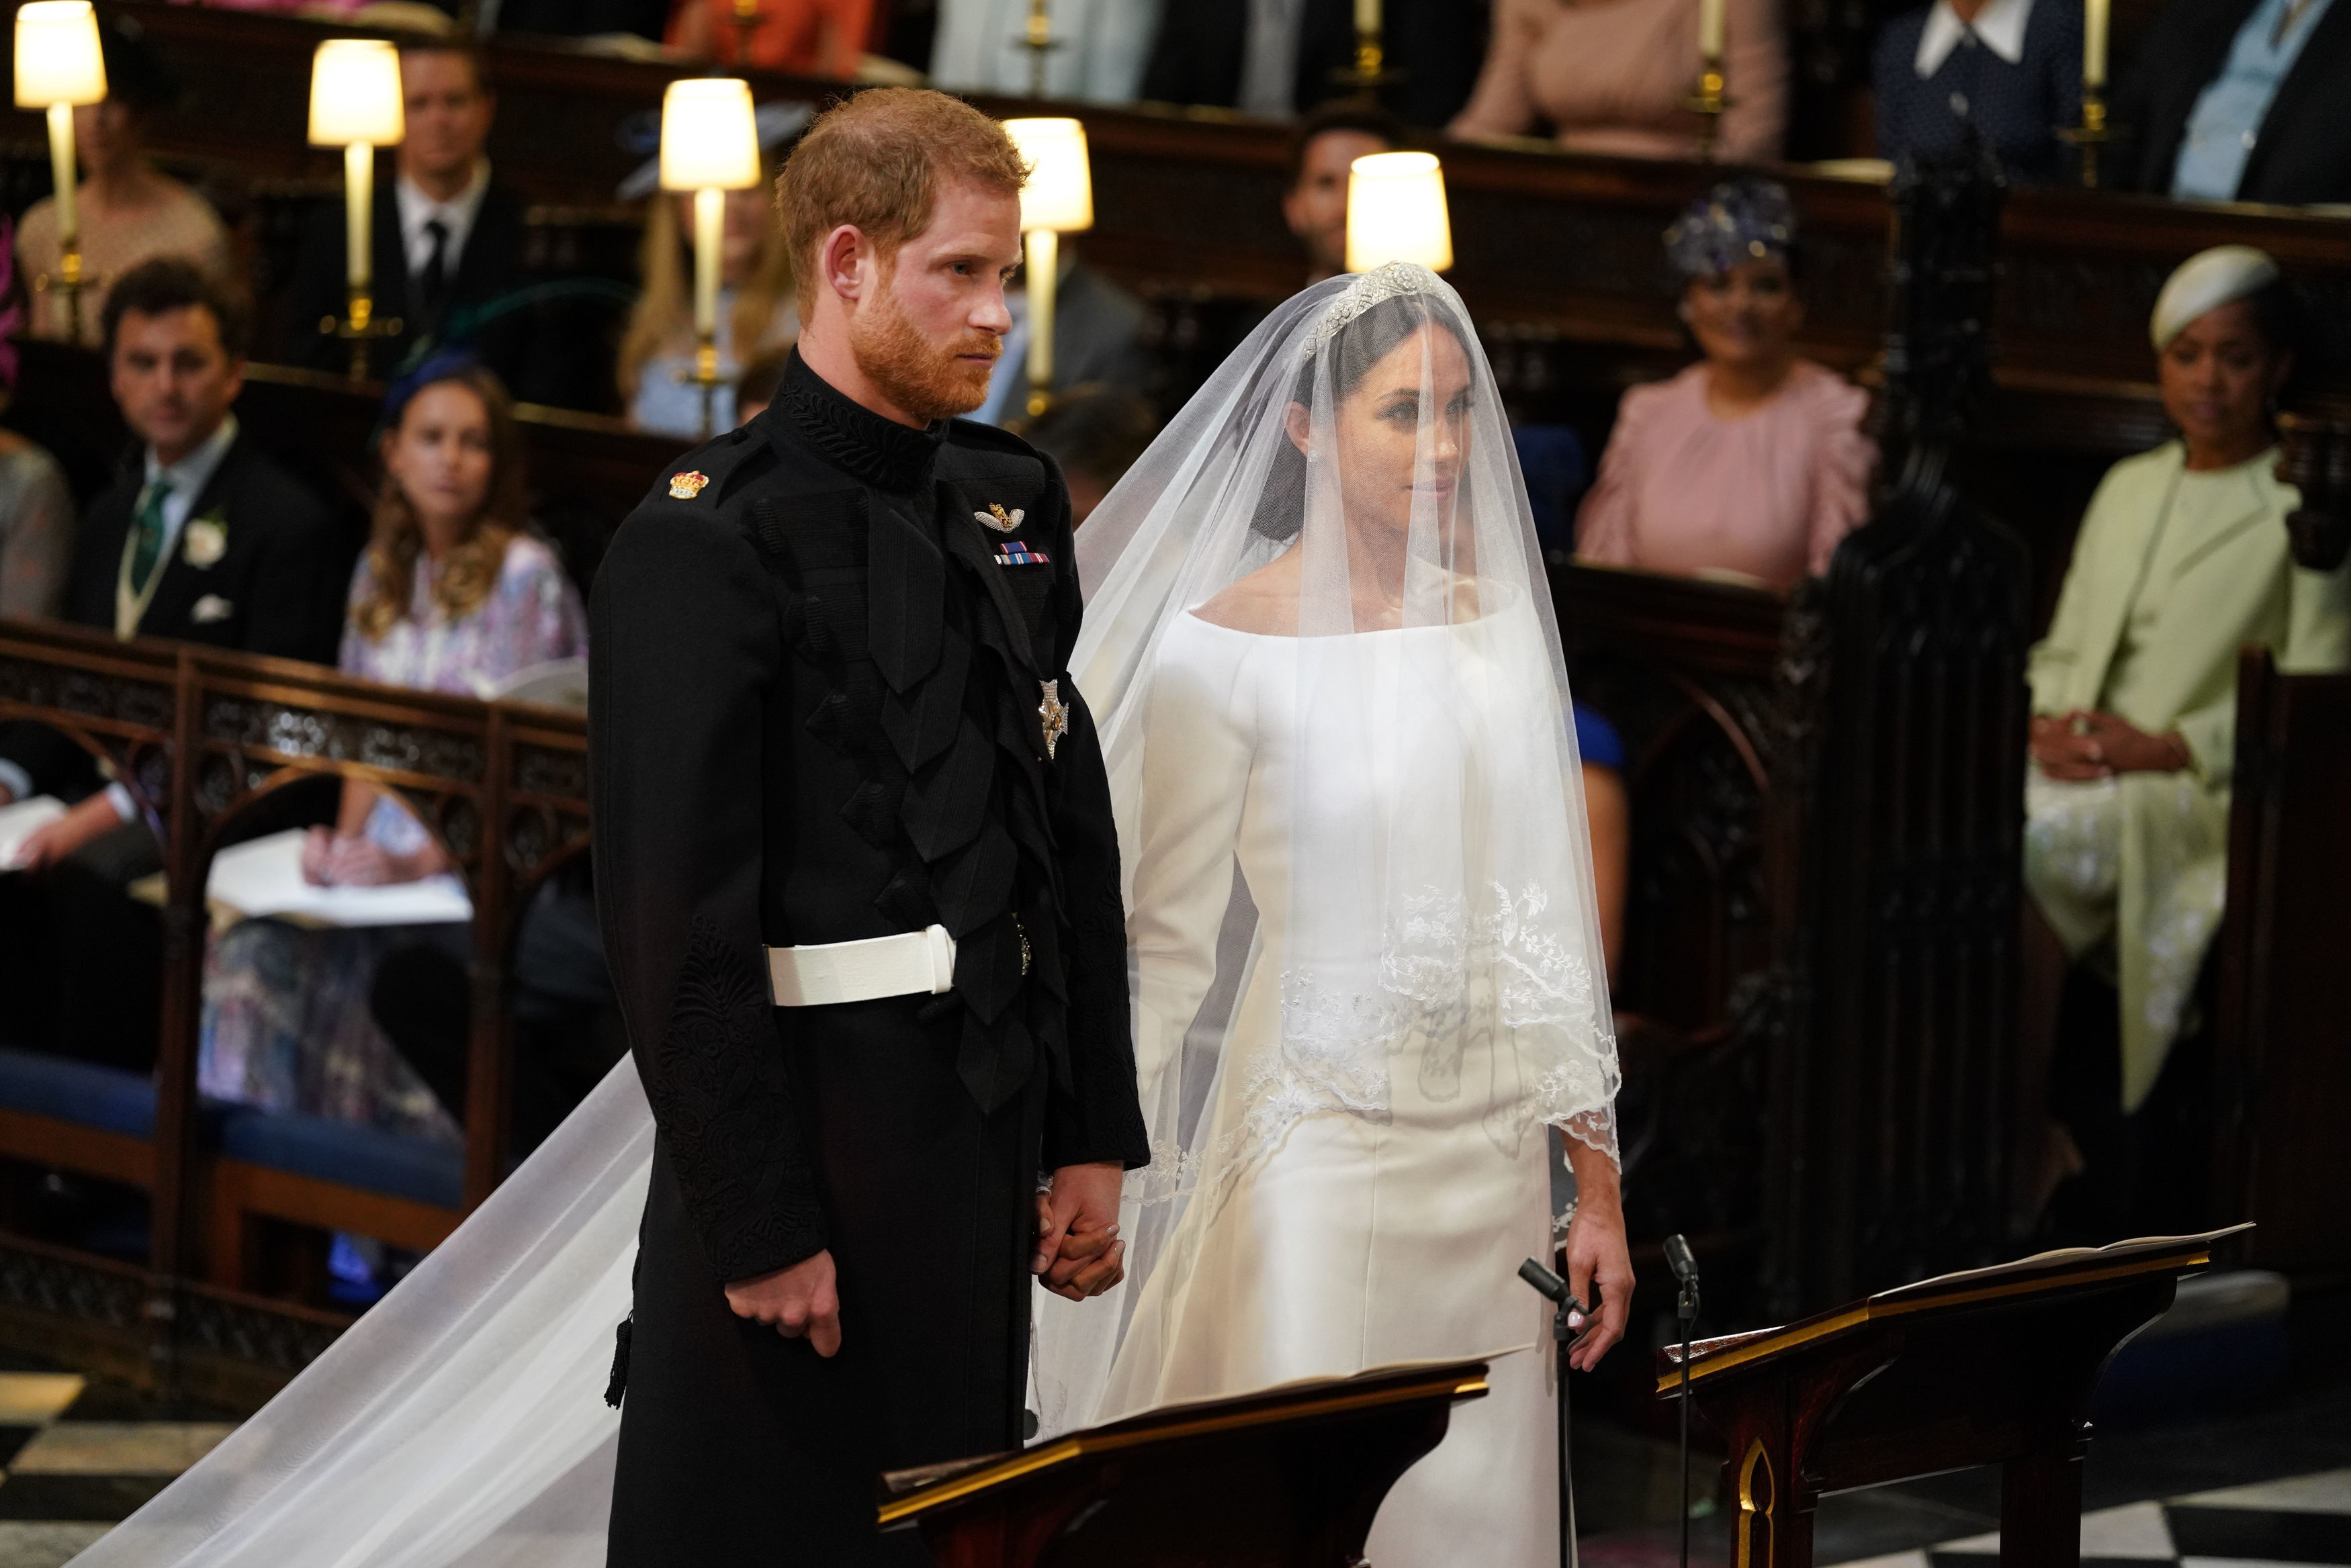 Prince Harry Meghan Markle 2018 royal wedding ceremony